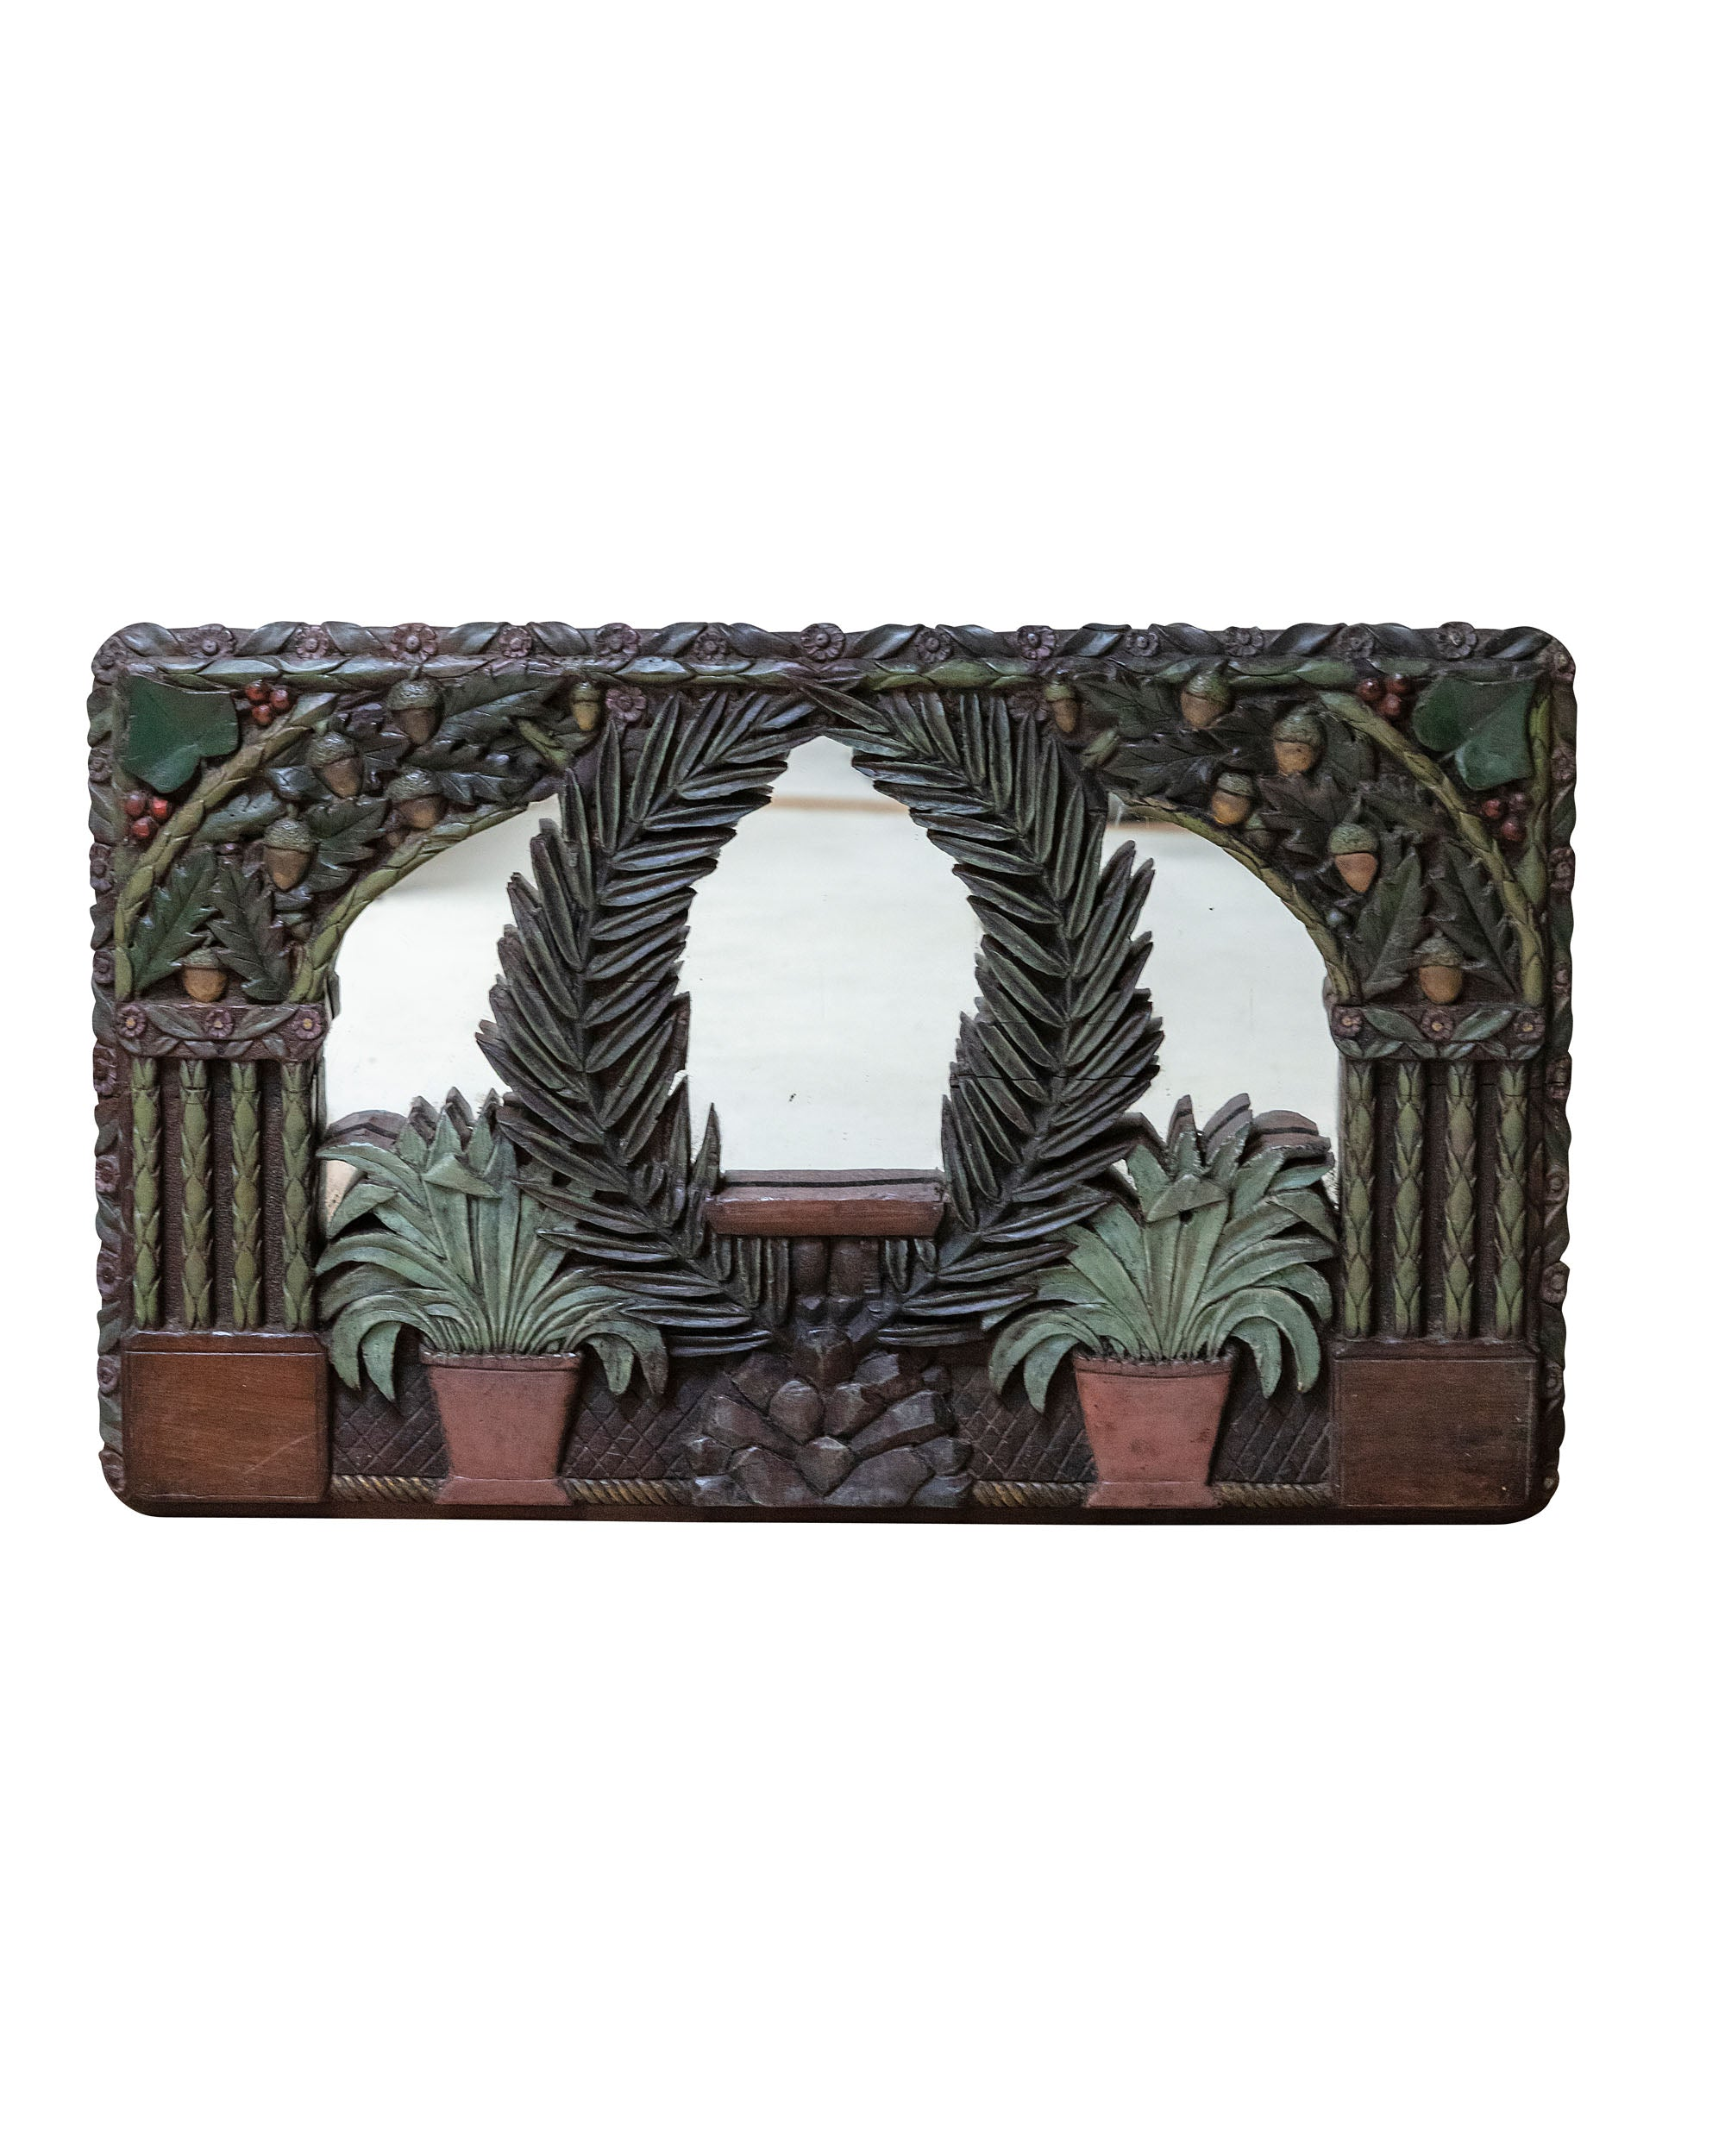 Polychrome mirror carved in wood depicting vegetation